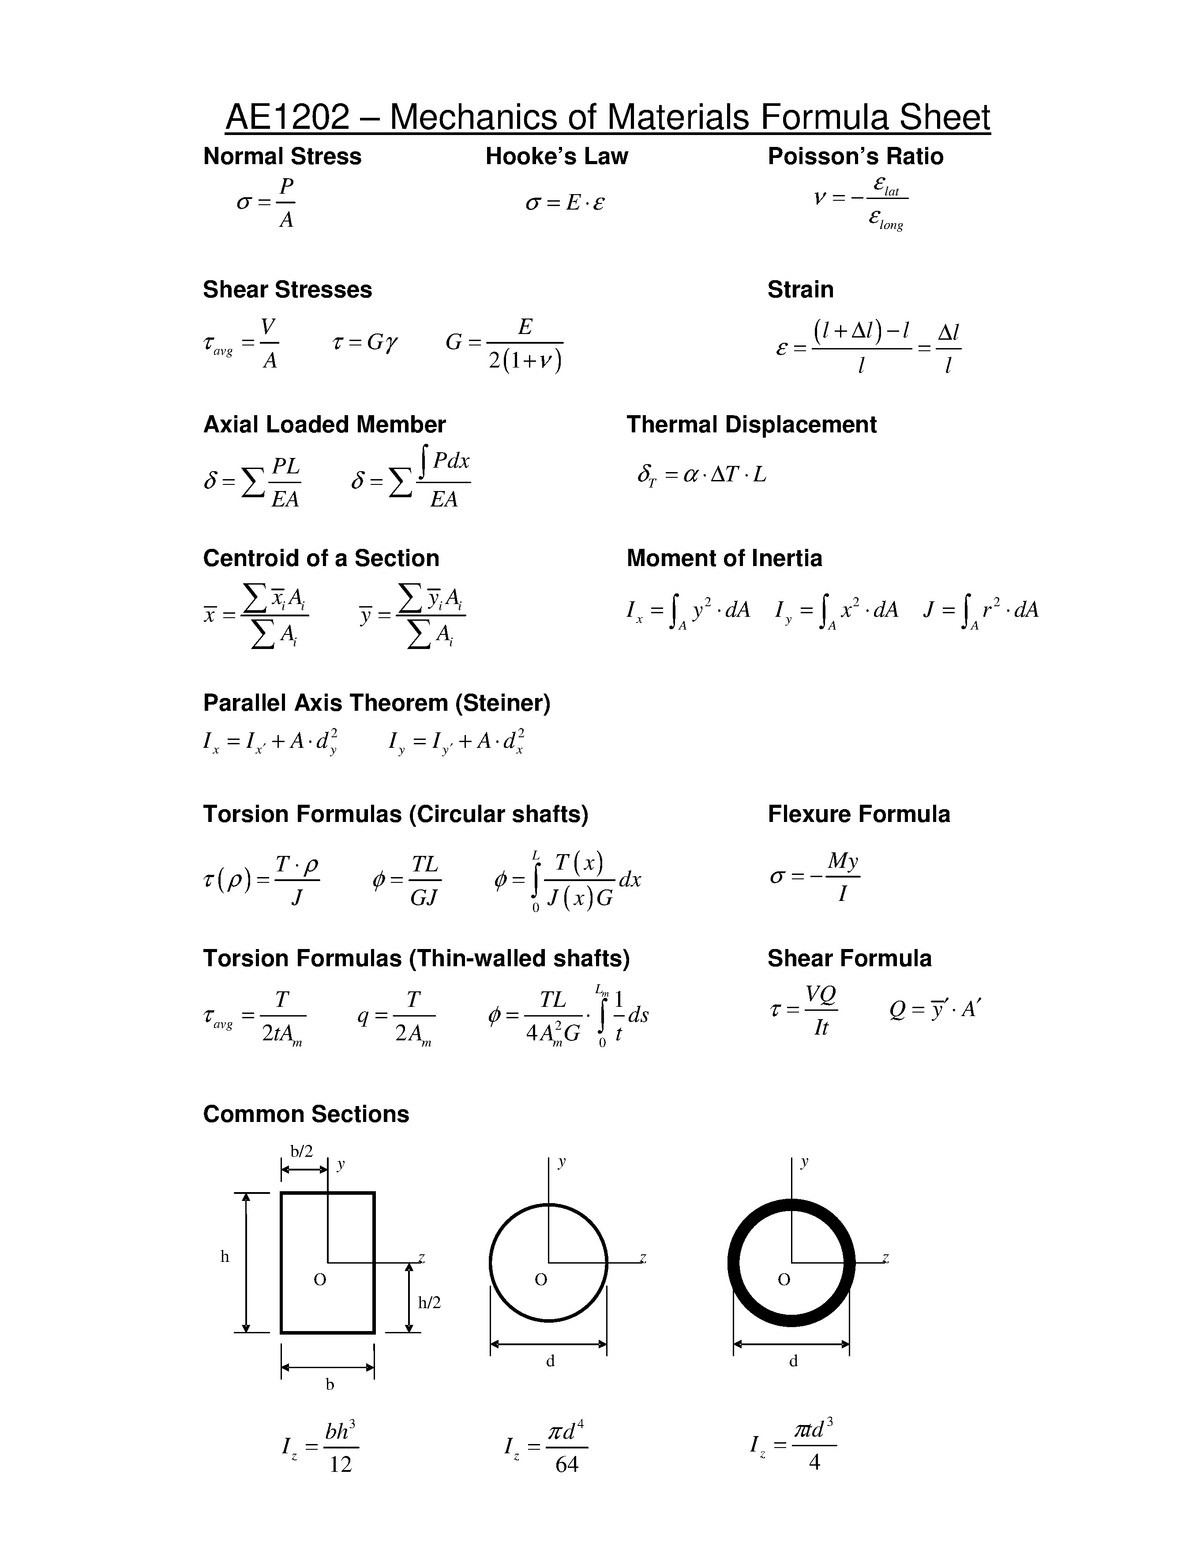 Formula Sheet AE1202 - AE1202-11: Materials and Structures